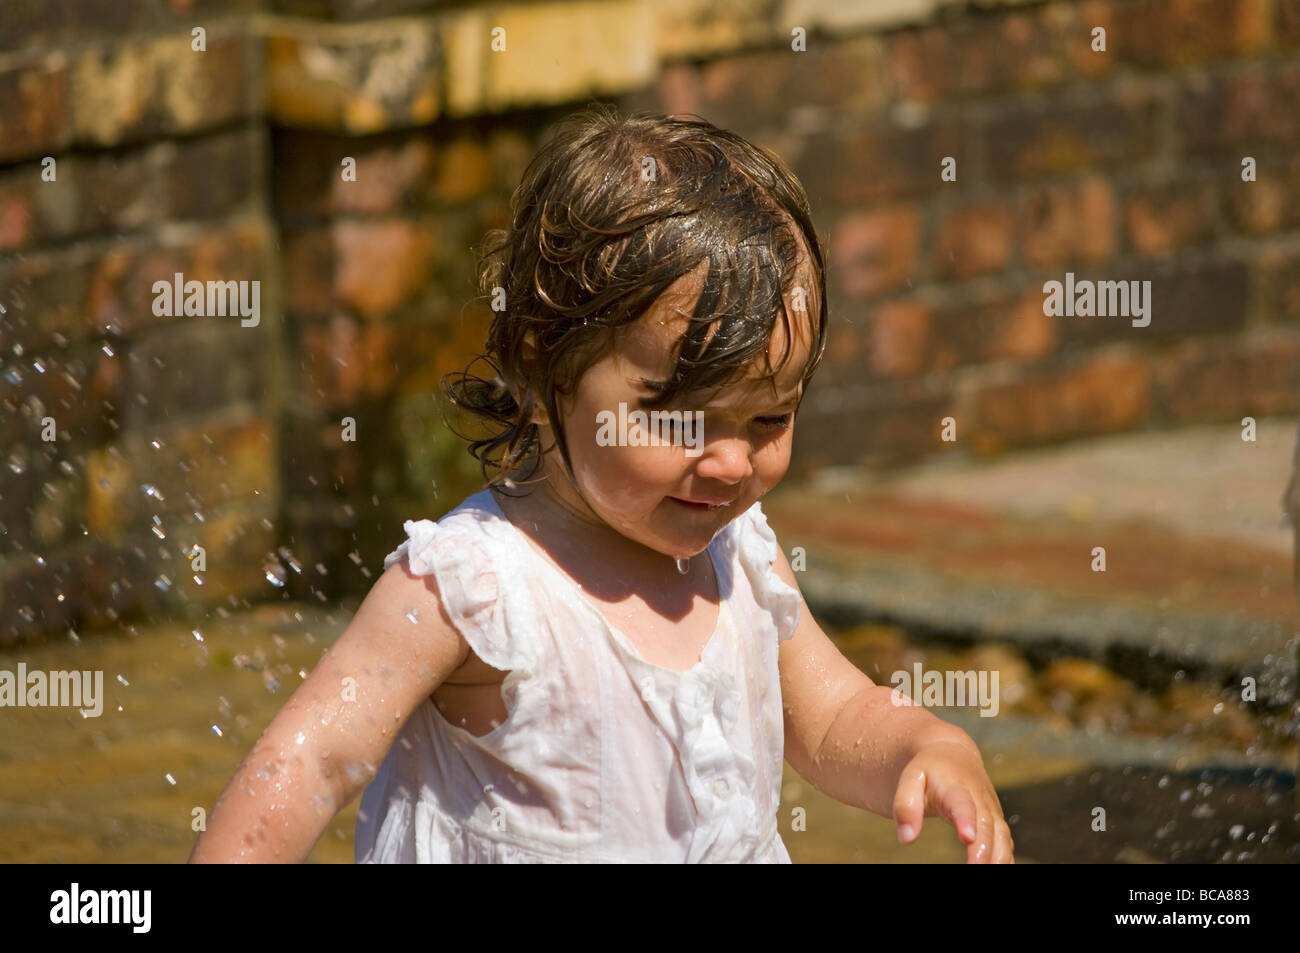 Baby Girl In a White Dress Playing In a Water Fountain - Stock Image